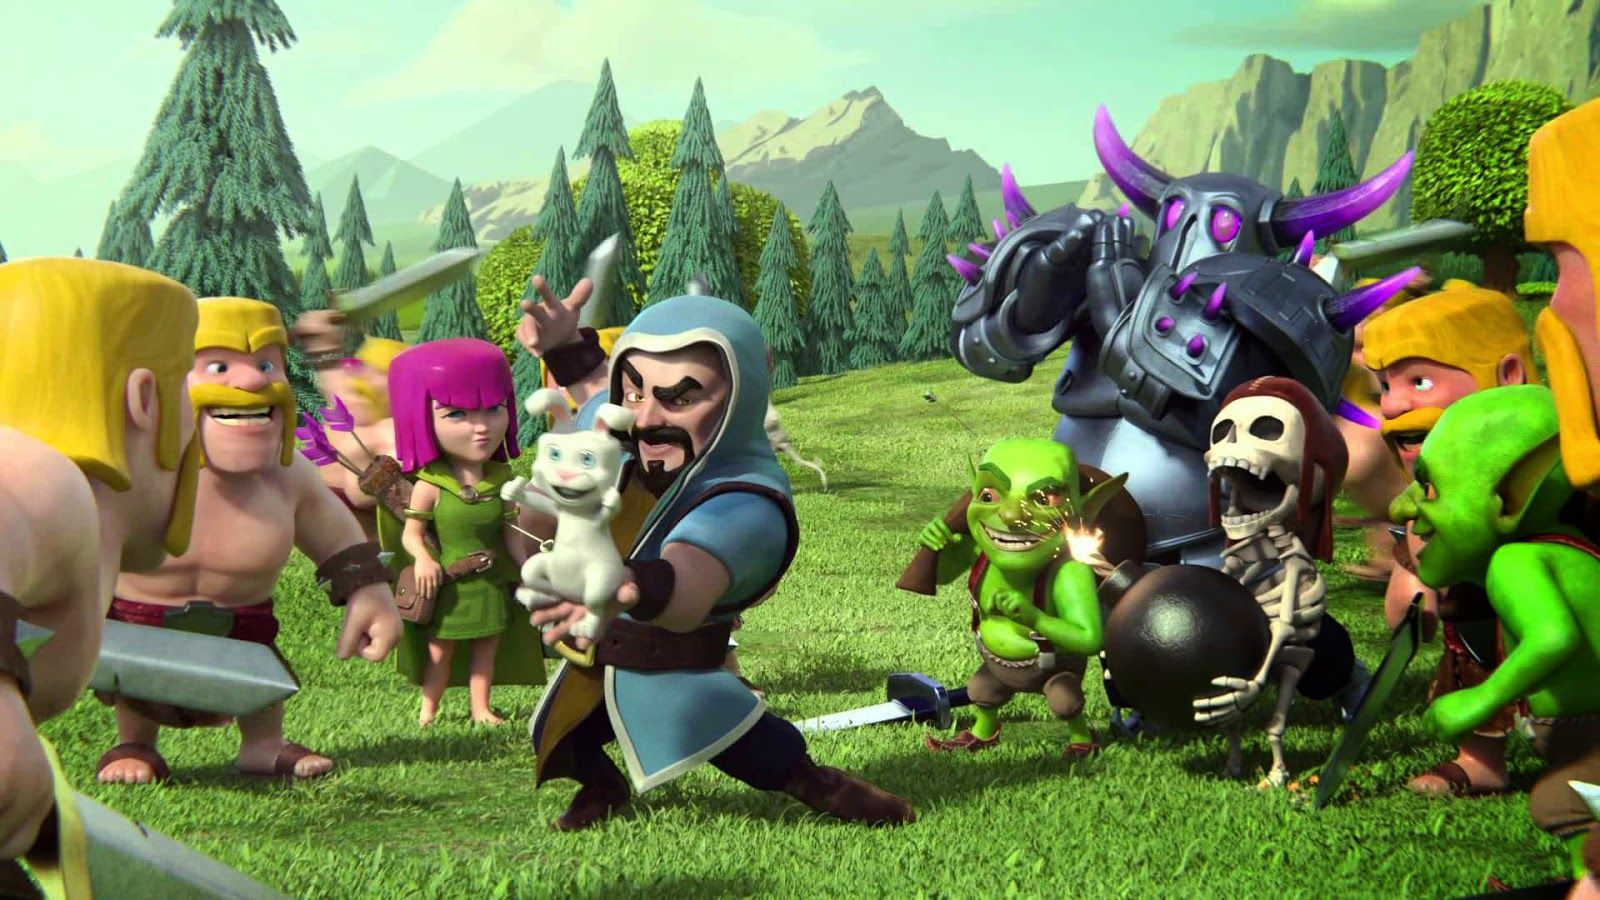 clash of clans 9 256 4 apk download coc october 2017 new update is available now 1